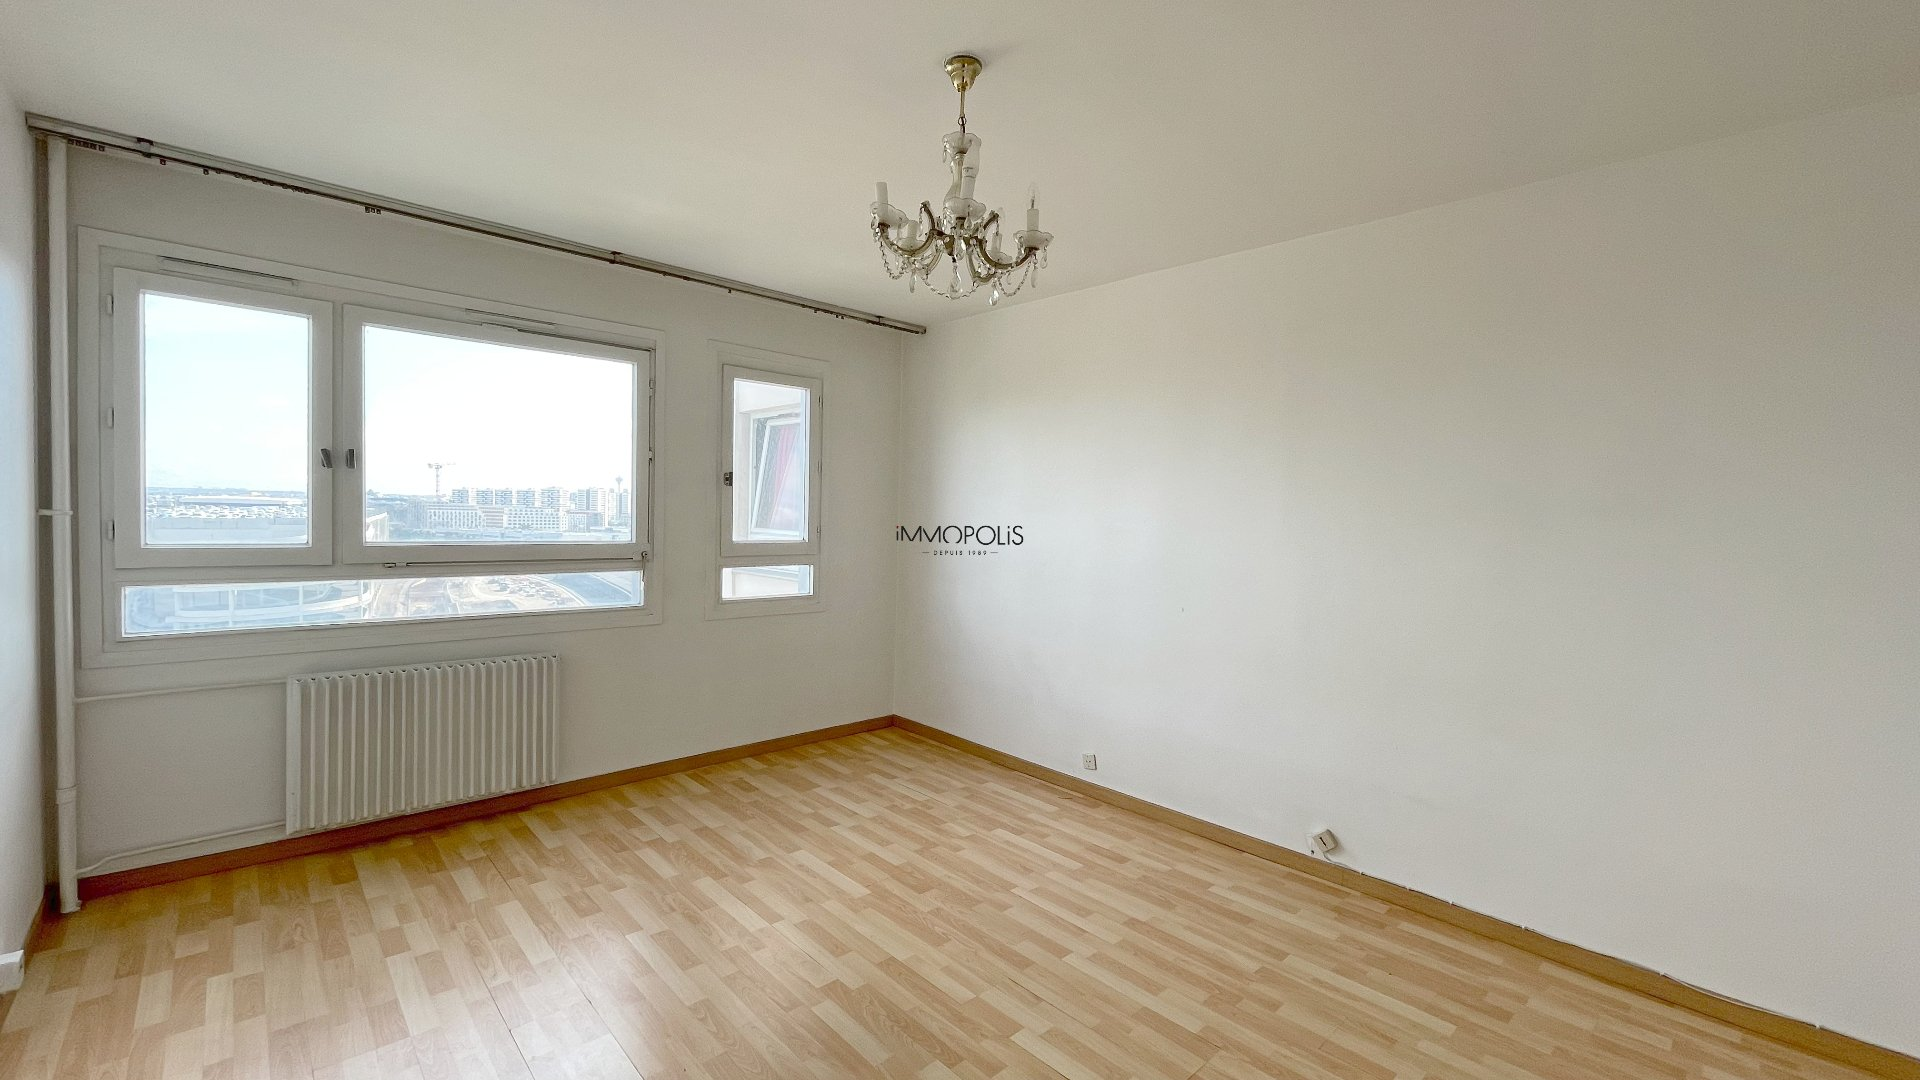 3 room apartment with unobstructed view of 63.45m2 sold with a box! 2